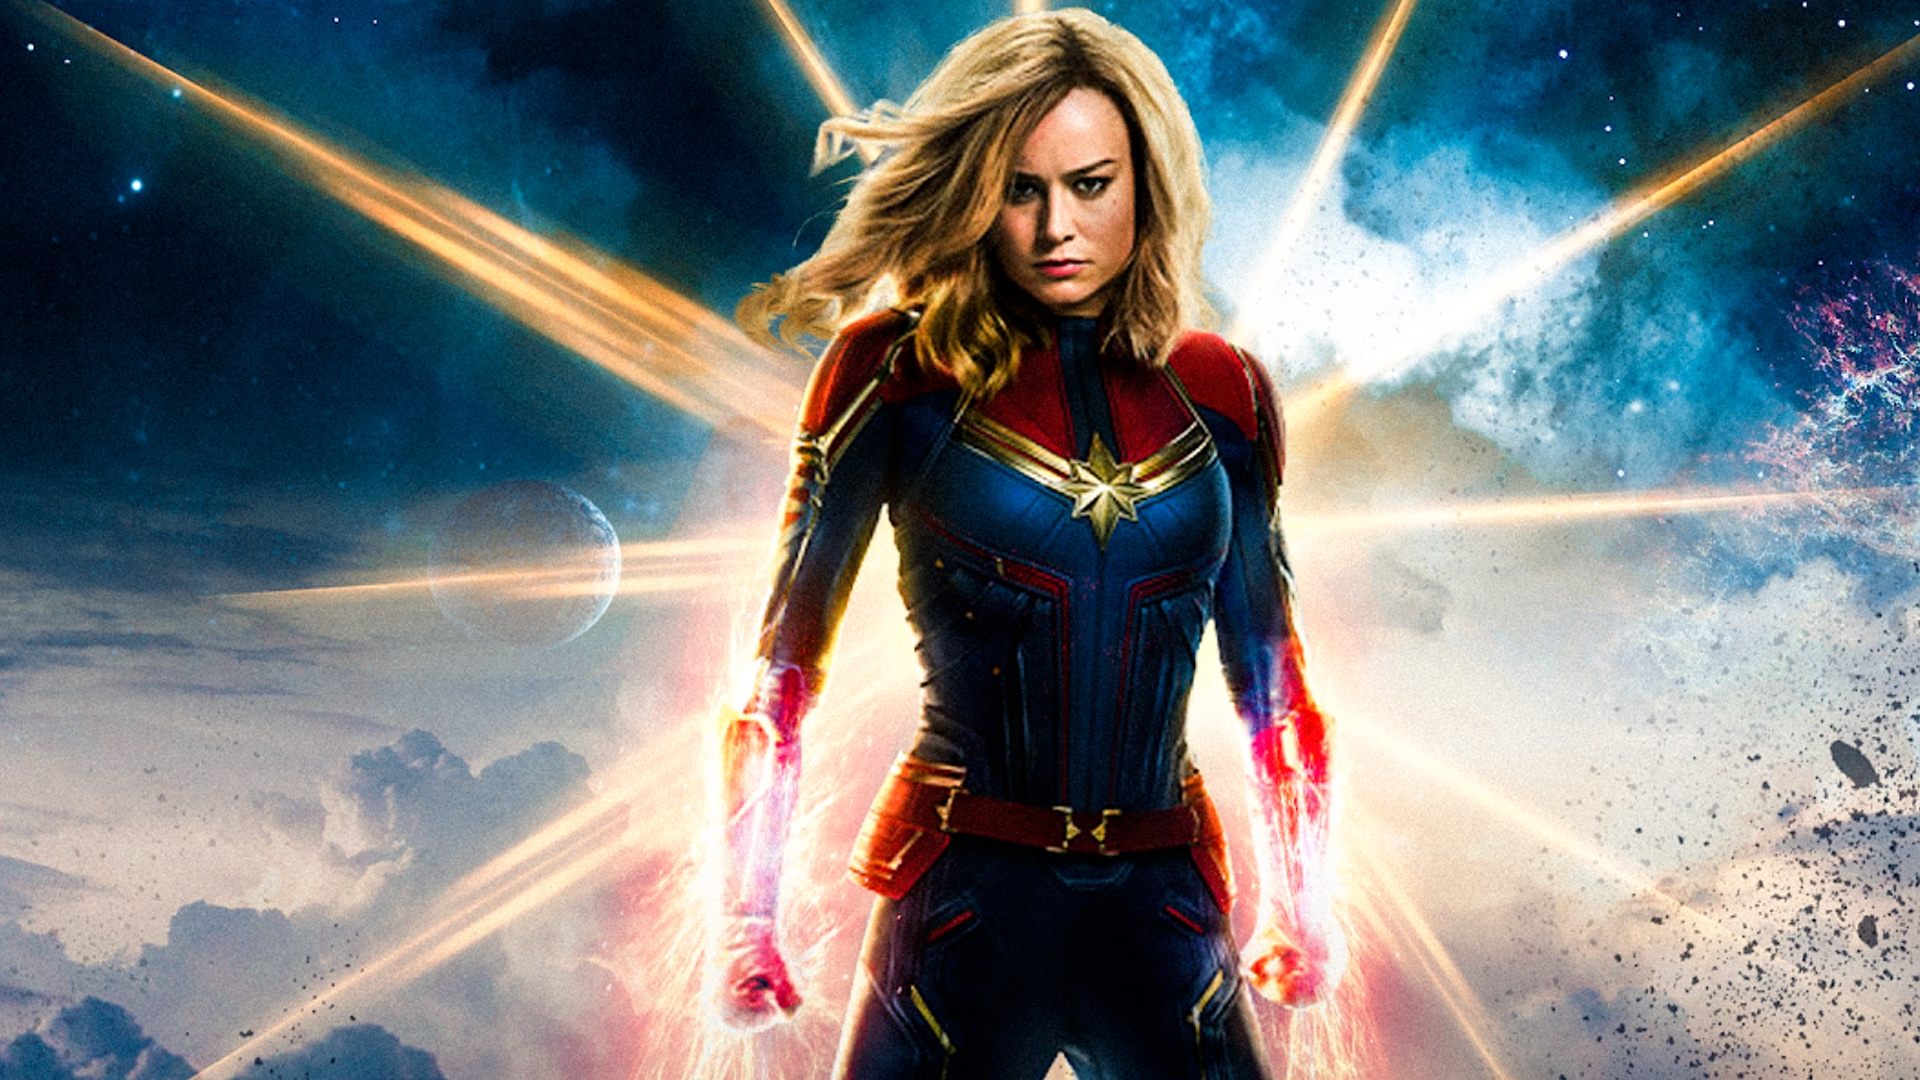 captain marvel: the female superhero we deserve | feminism in india